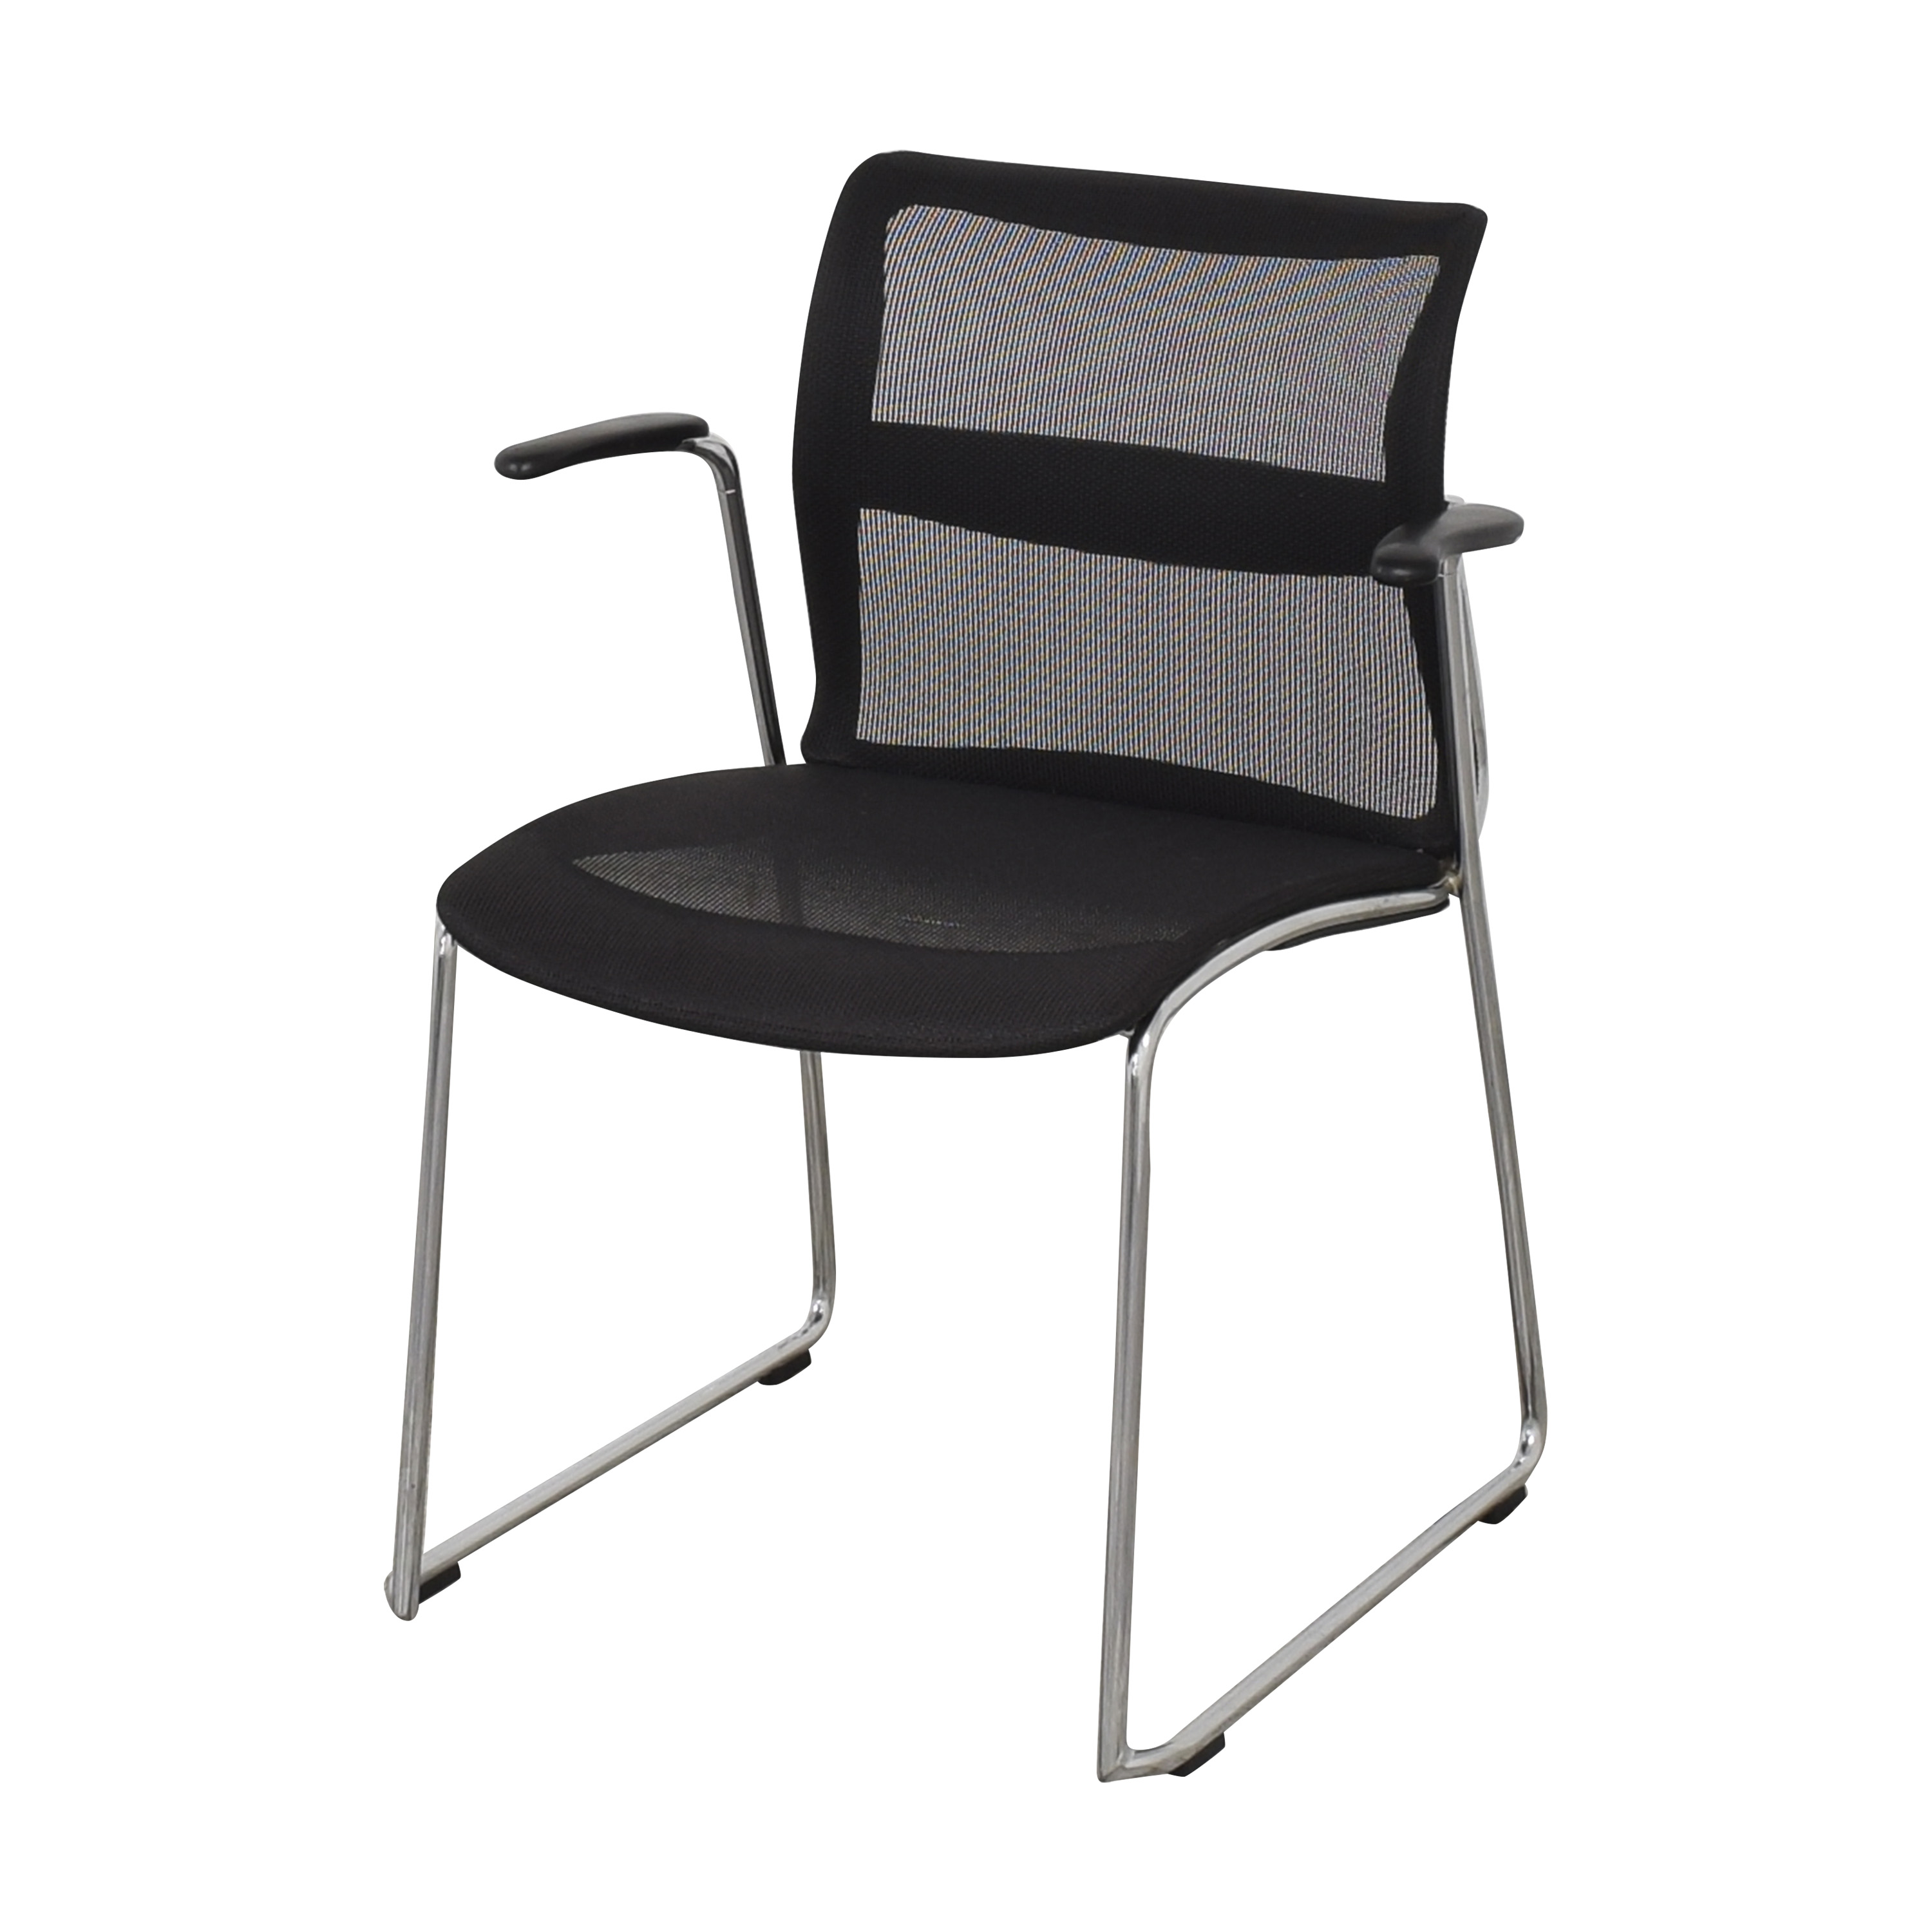 Stylex Stylex Zephyr Stacking Arm Chair second hand